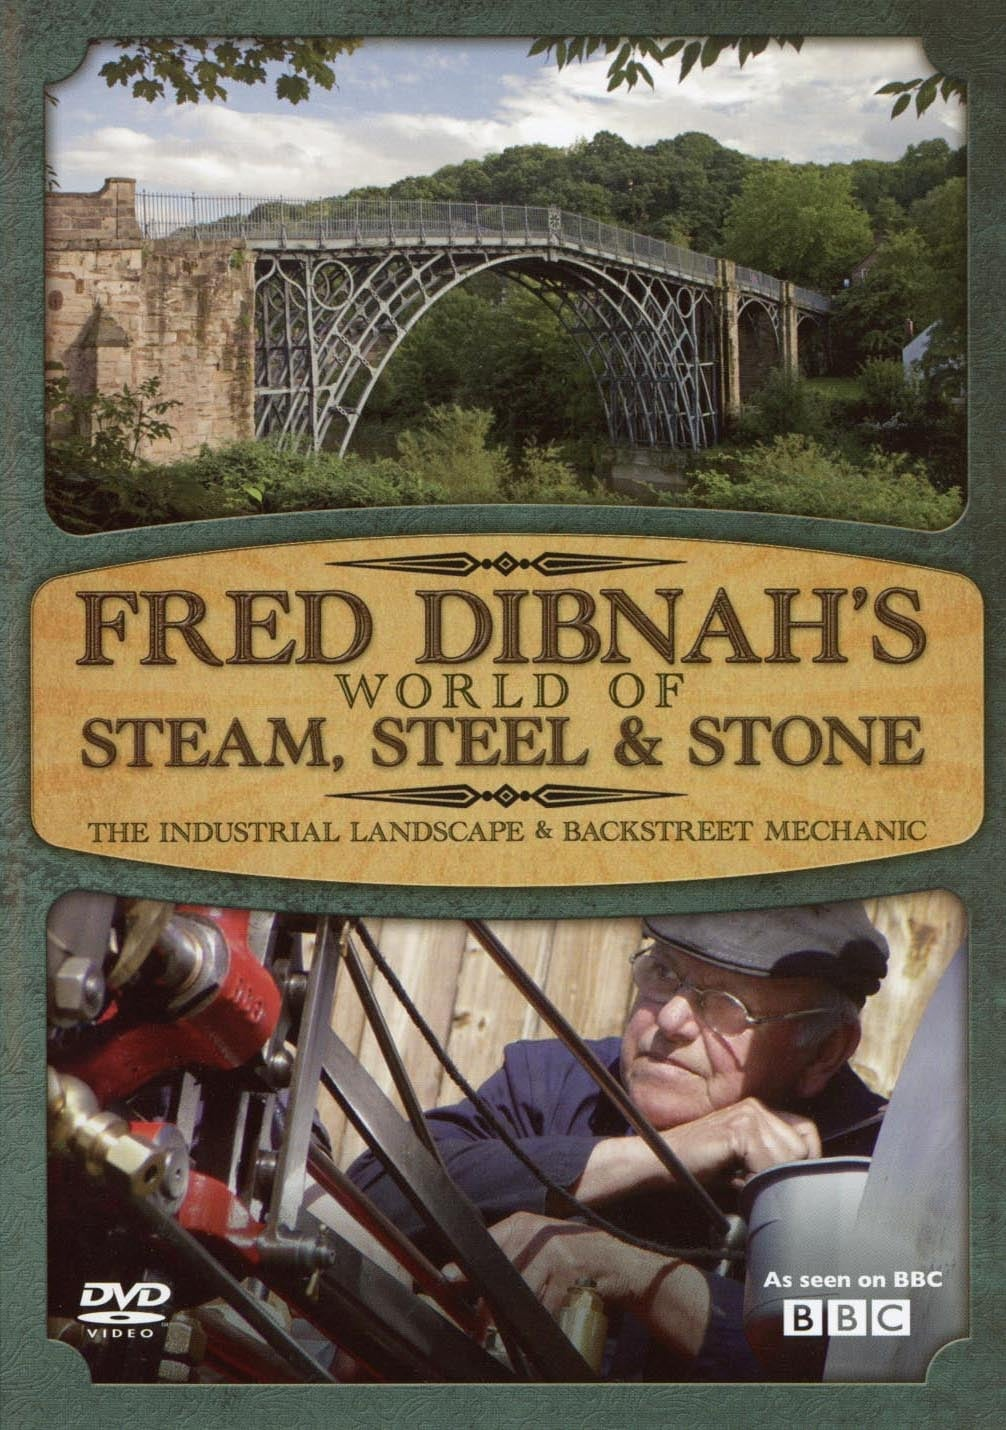 Fred Dibnah's World of Steam, Steel and Stone (2006)